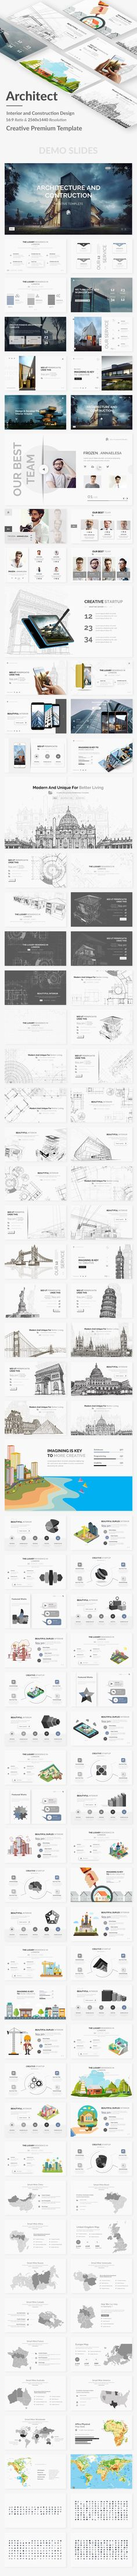 #Architecture #Interior and #Construction Design Google Slide Template - Google Slides Presentation Templates